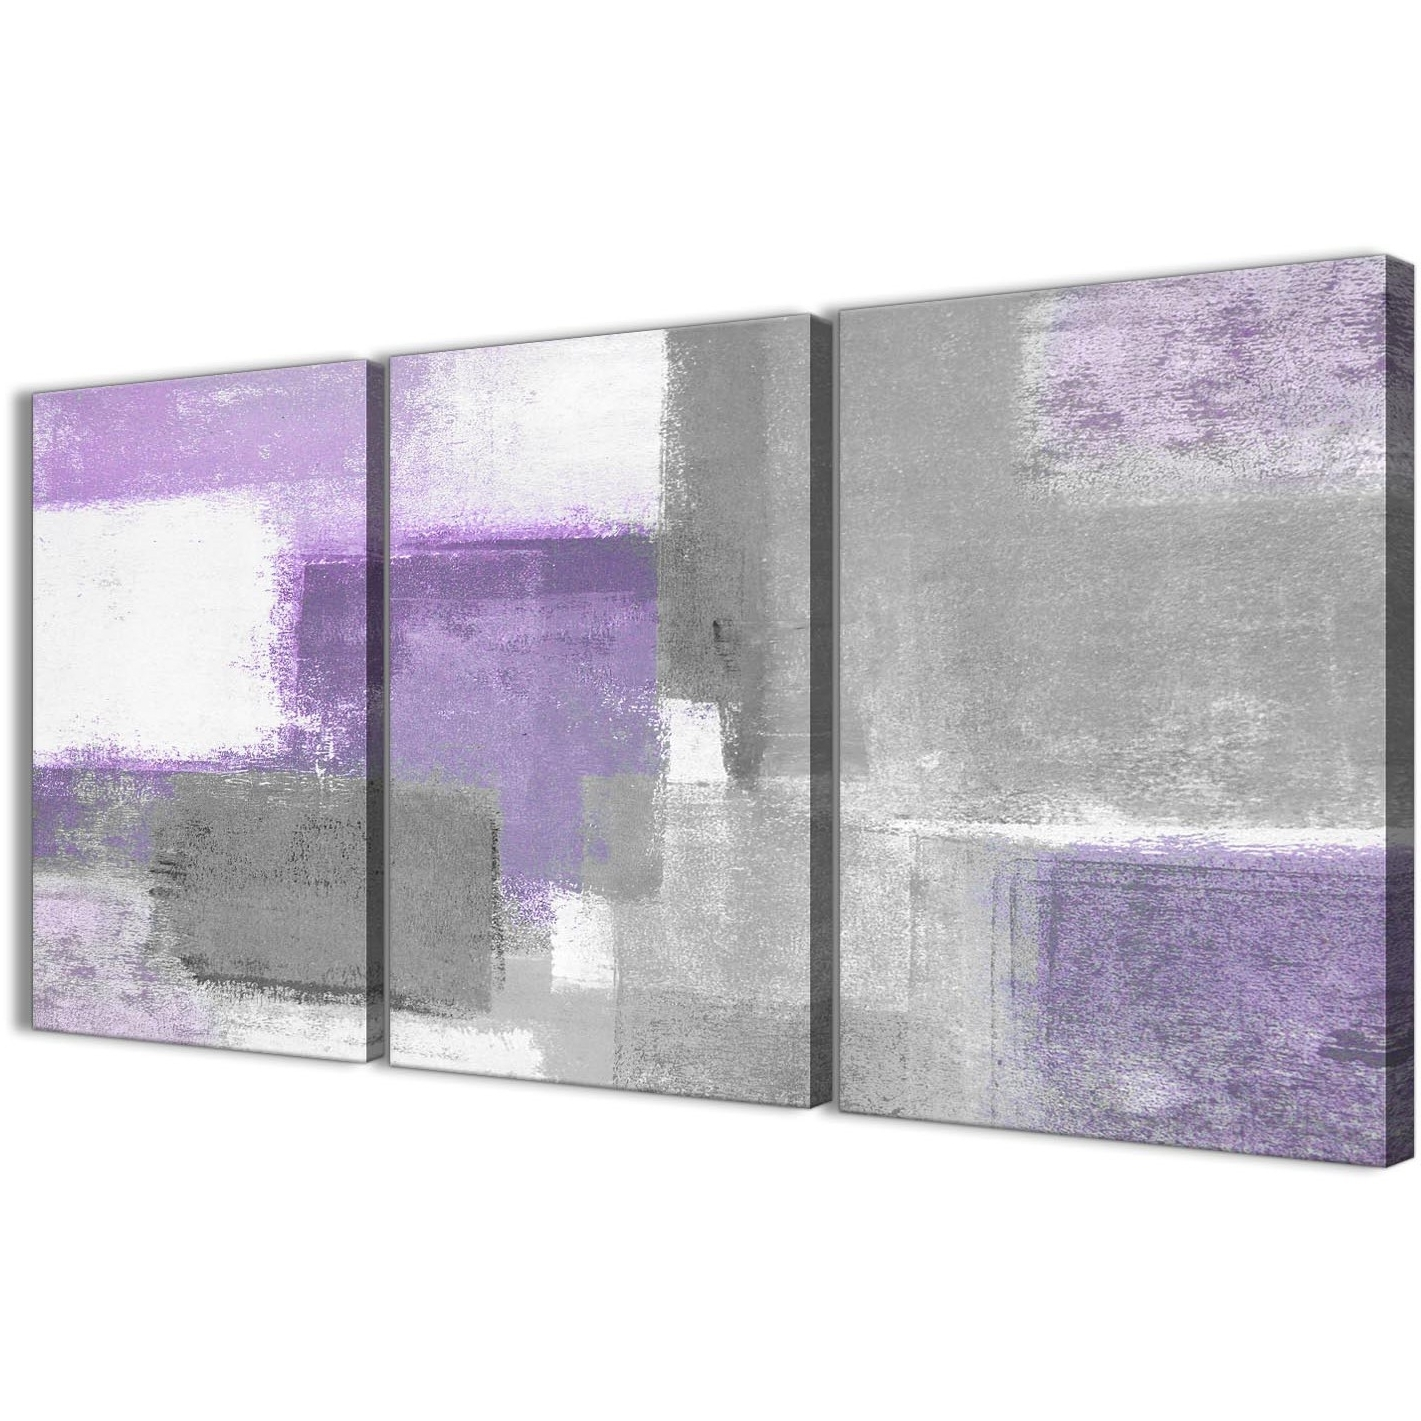 Purple Wall Art Canvas Intended For Most Recent 3 Piece Purple Grey Painting Kitchen Canvas Pictures Decor (View 10 of 15)